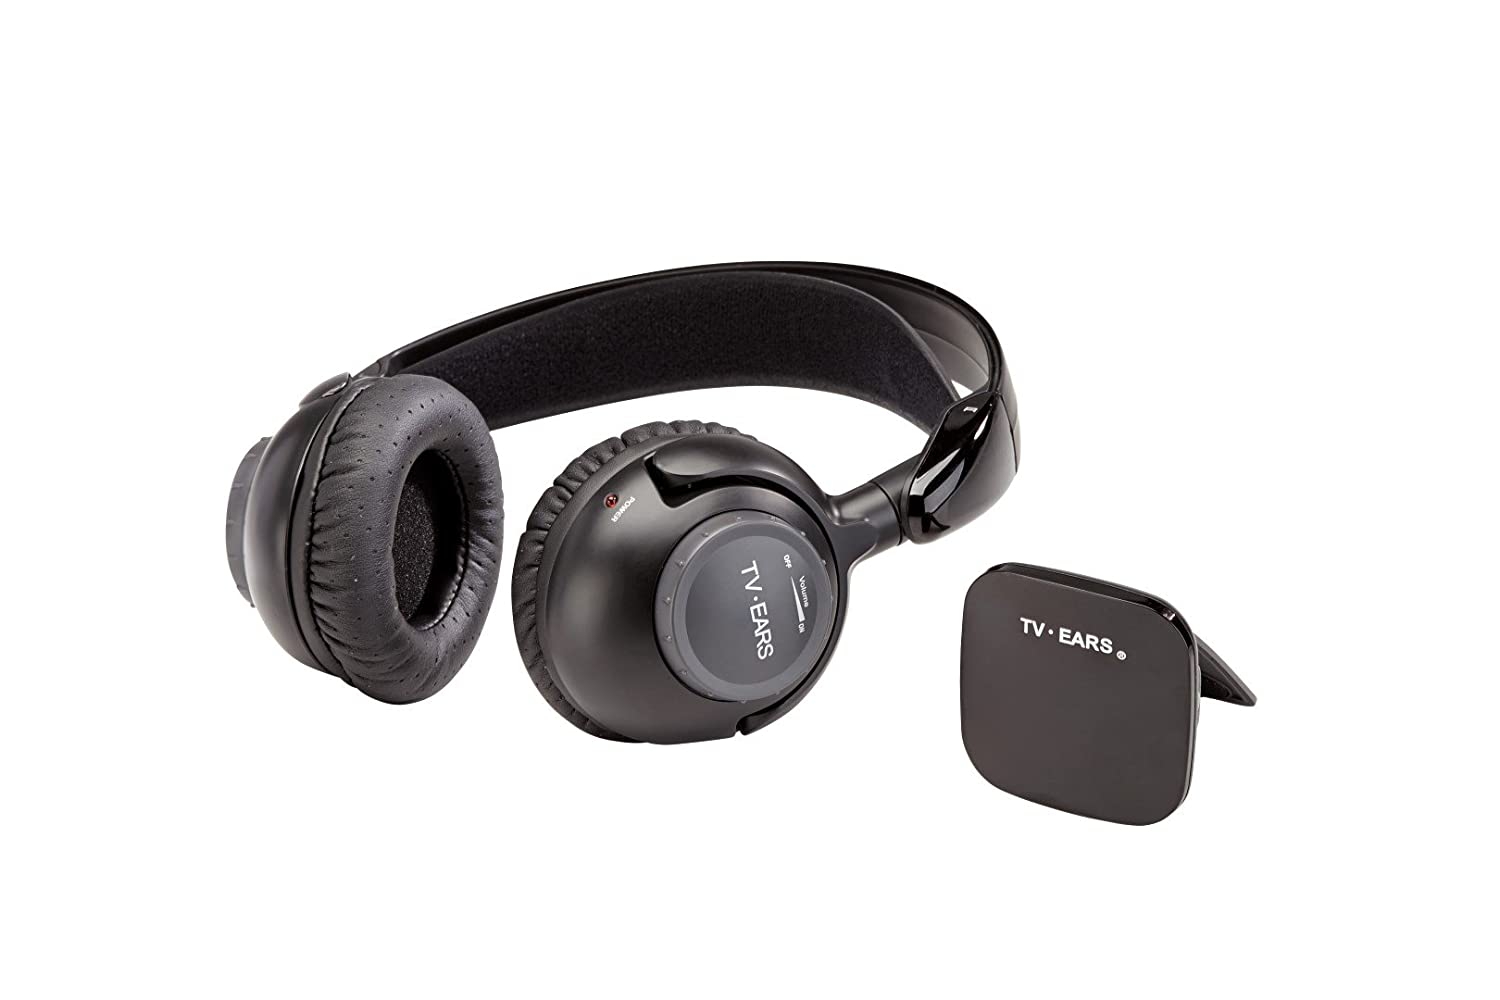 Tv Ears Wireless Headphone System Usb Powered Loudness Controller Circuit Making Easy Circuits Transmitter Large Volume Tone Dials Hearing Aid Device Listening Headphones For